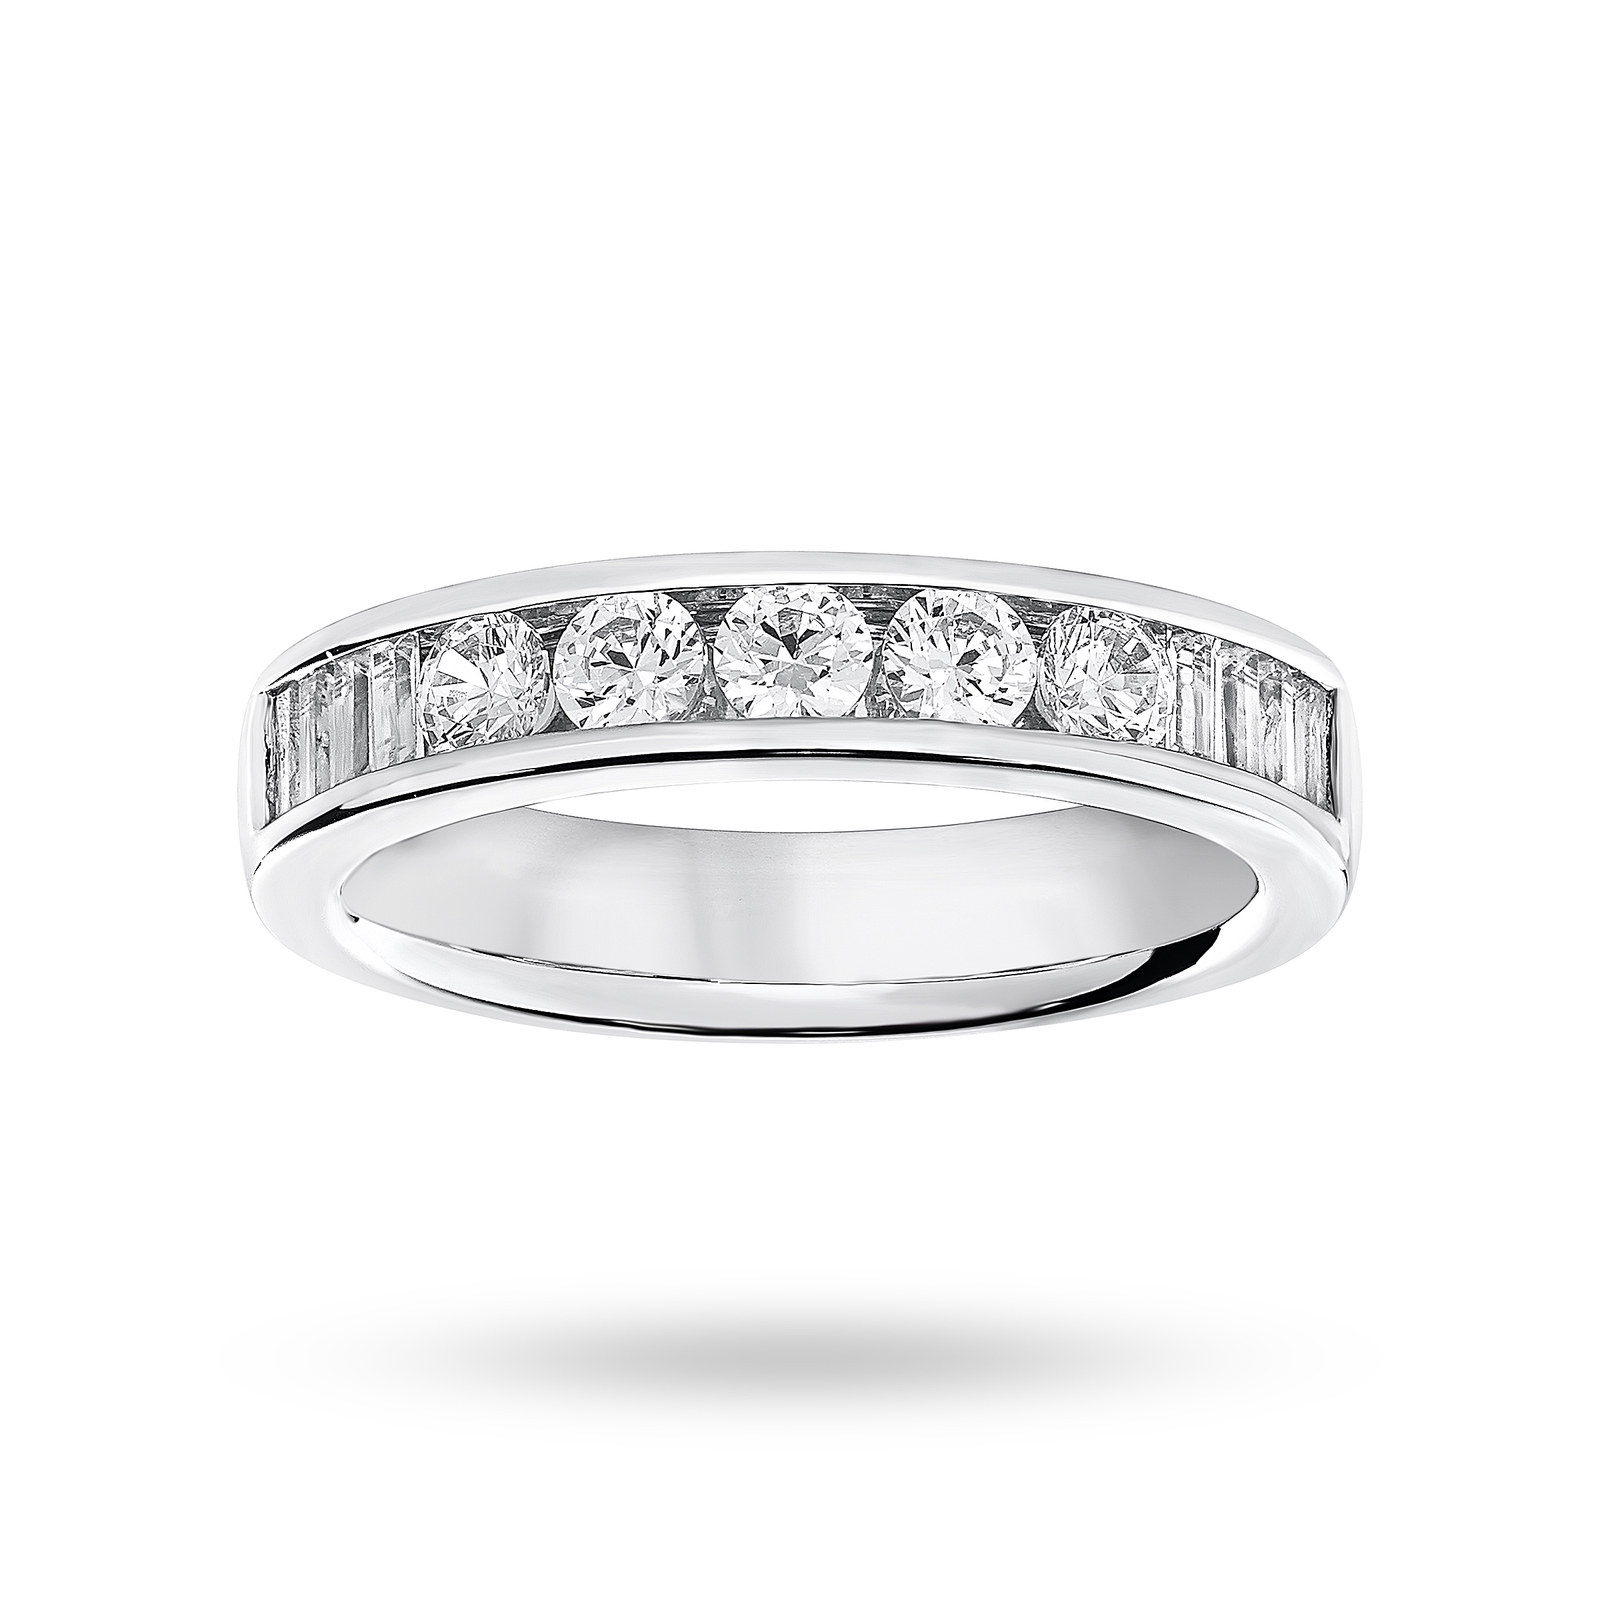 Platinum 0.75 Carat Brilliant Cut and Baguette Channel Set Half Eternity Ring